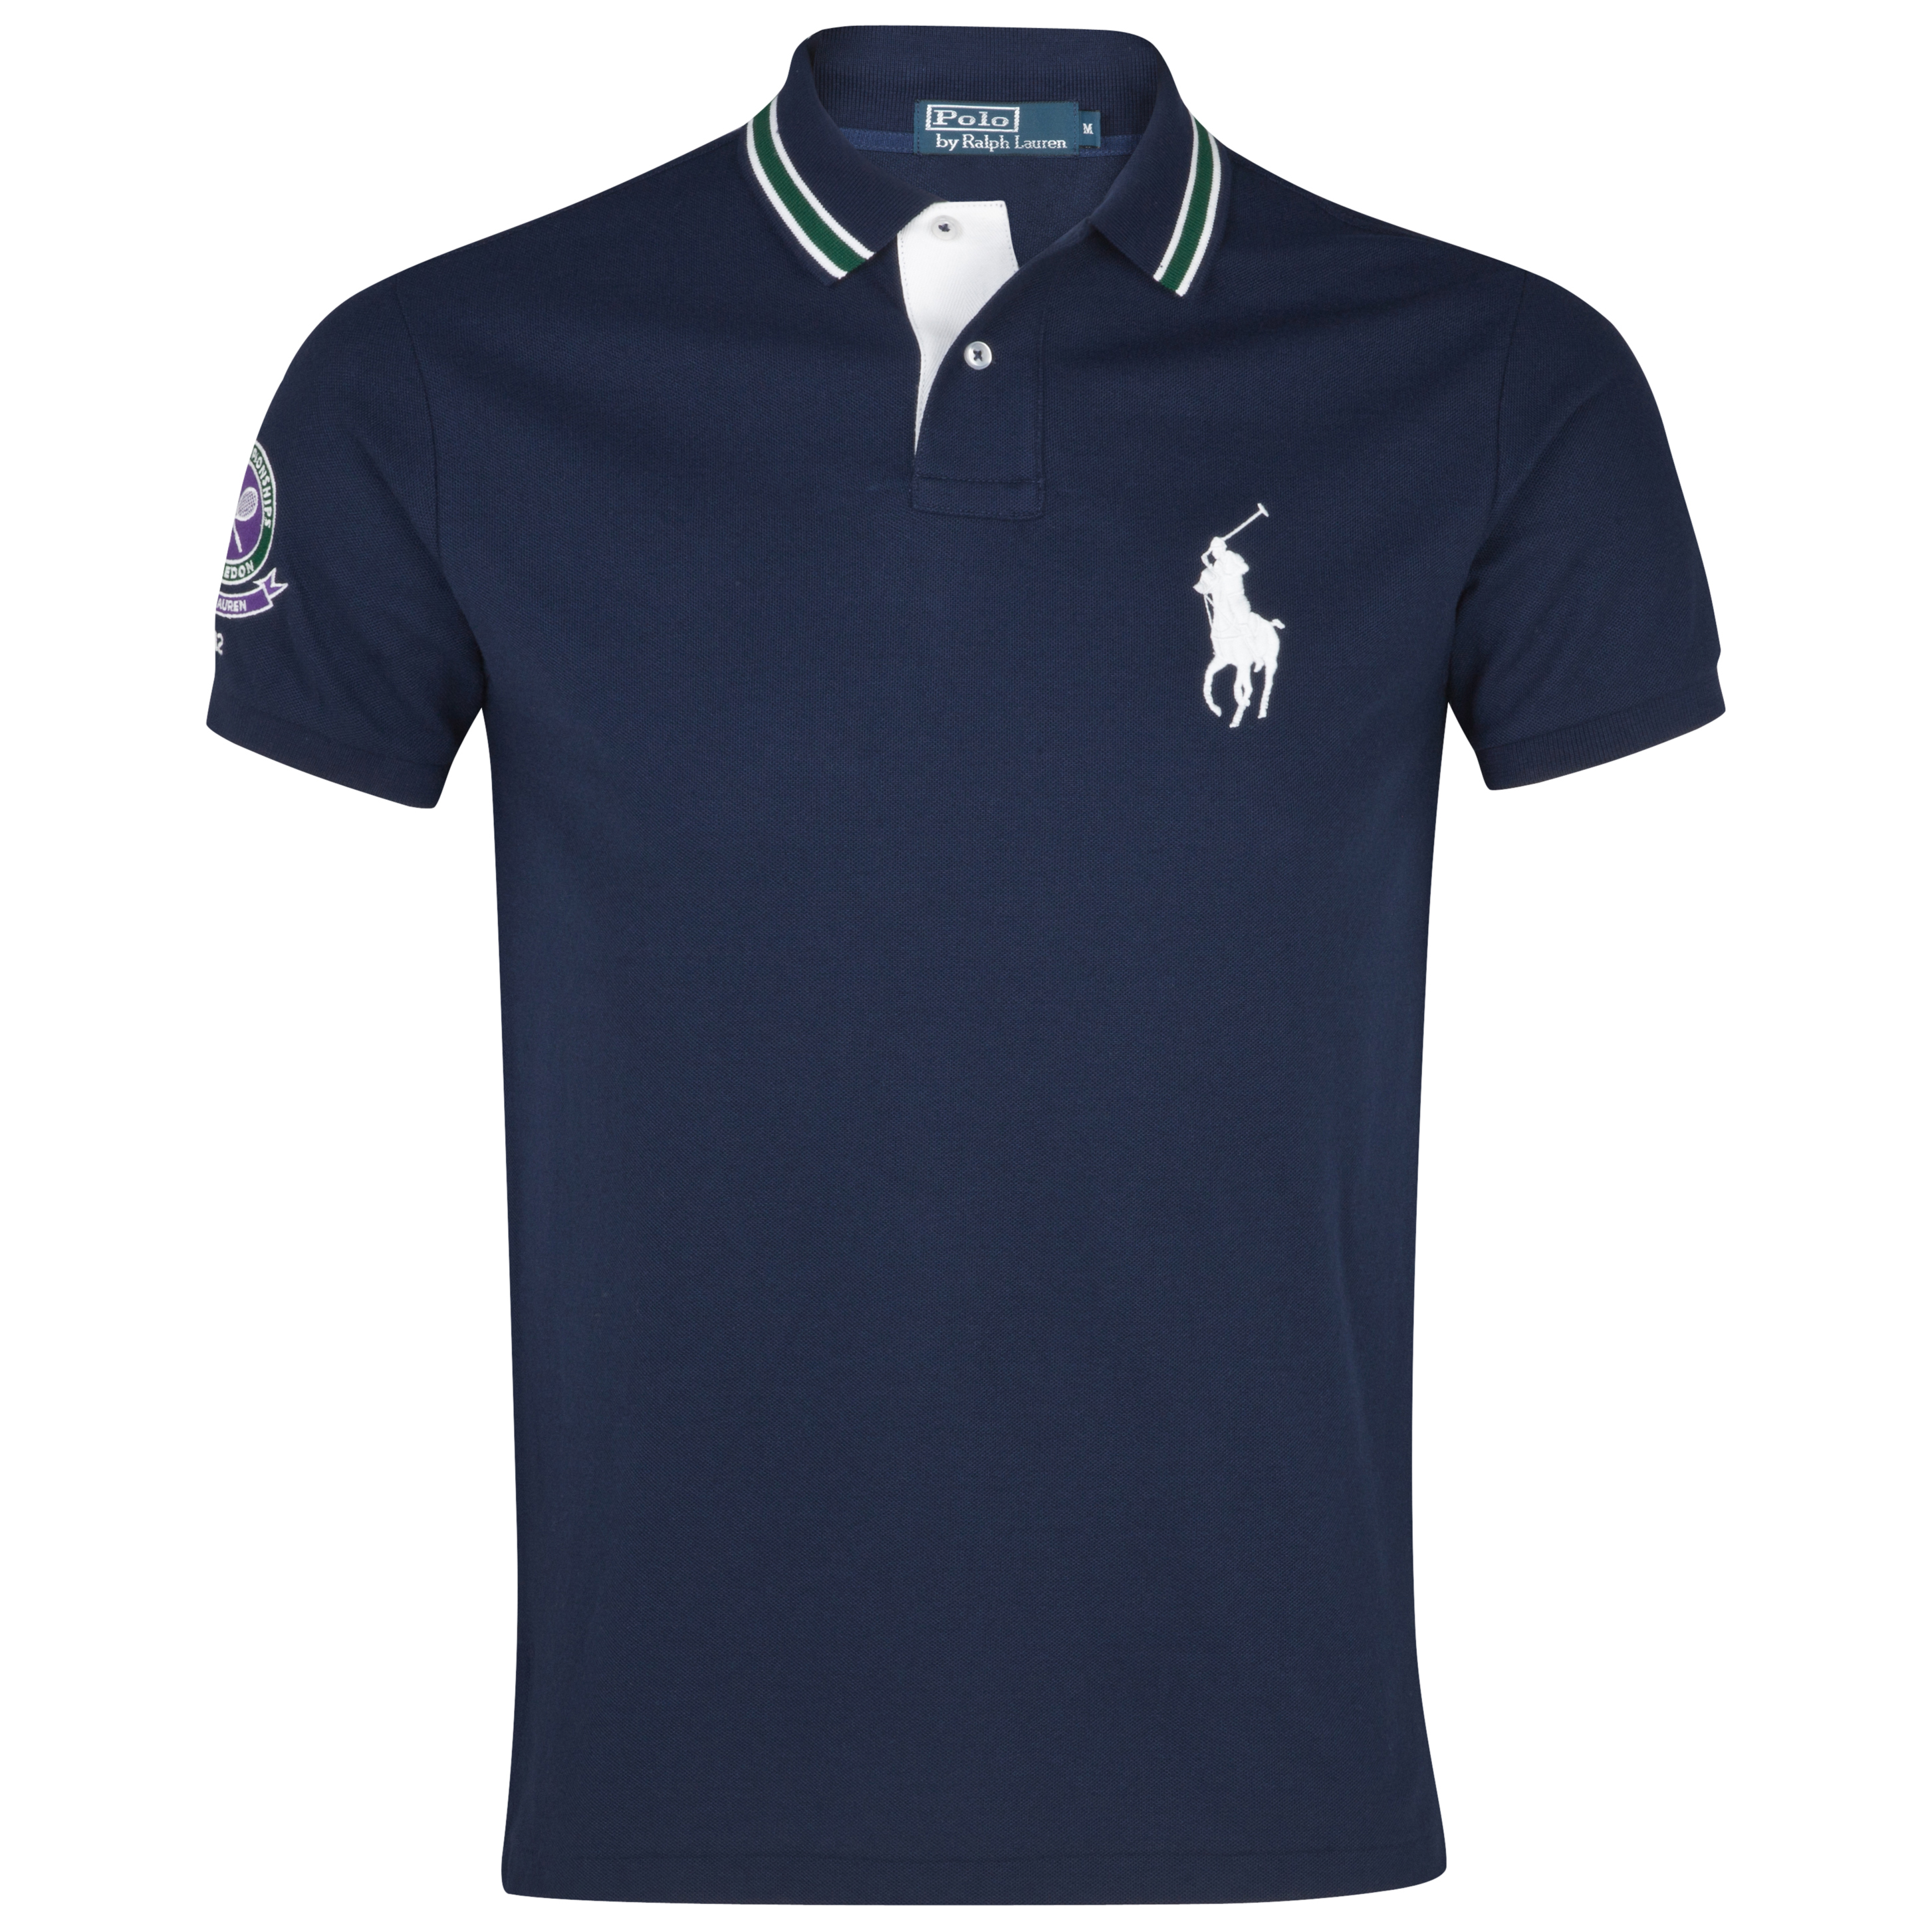 Polo Ralph Lauren Polo Ball Boy Cotton Pique Polo - French Navy - Boys